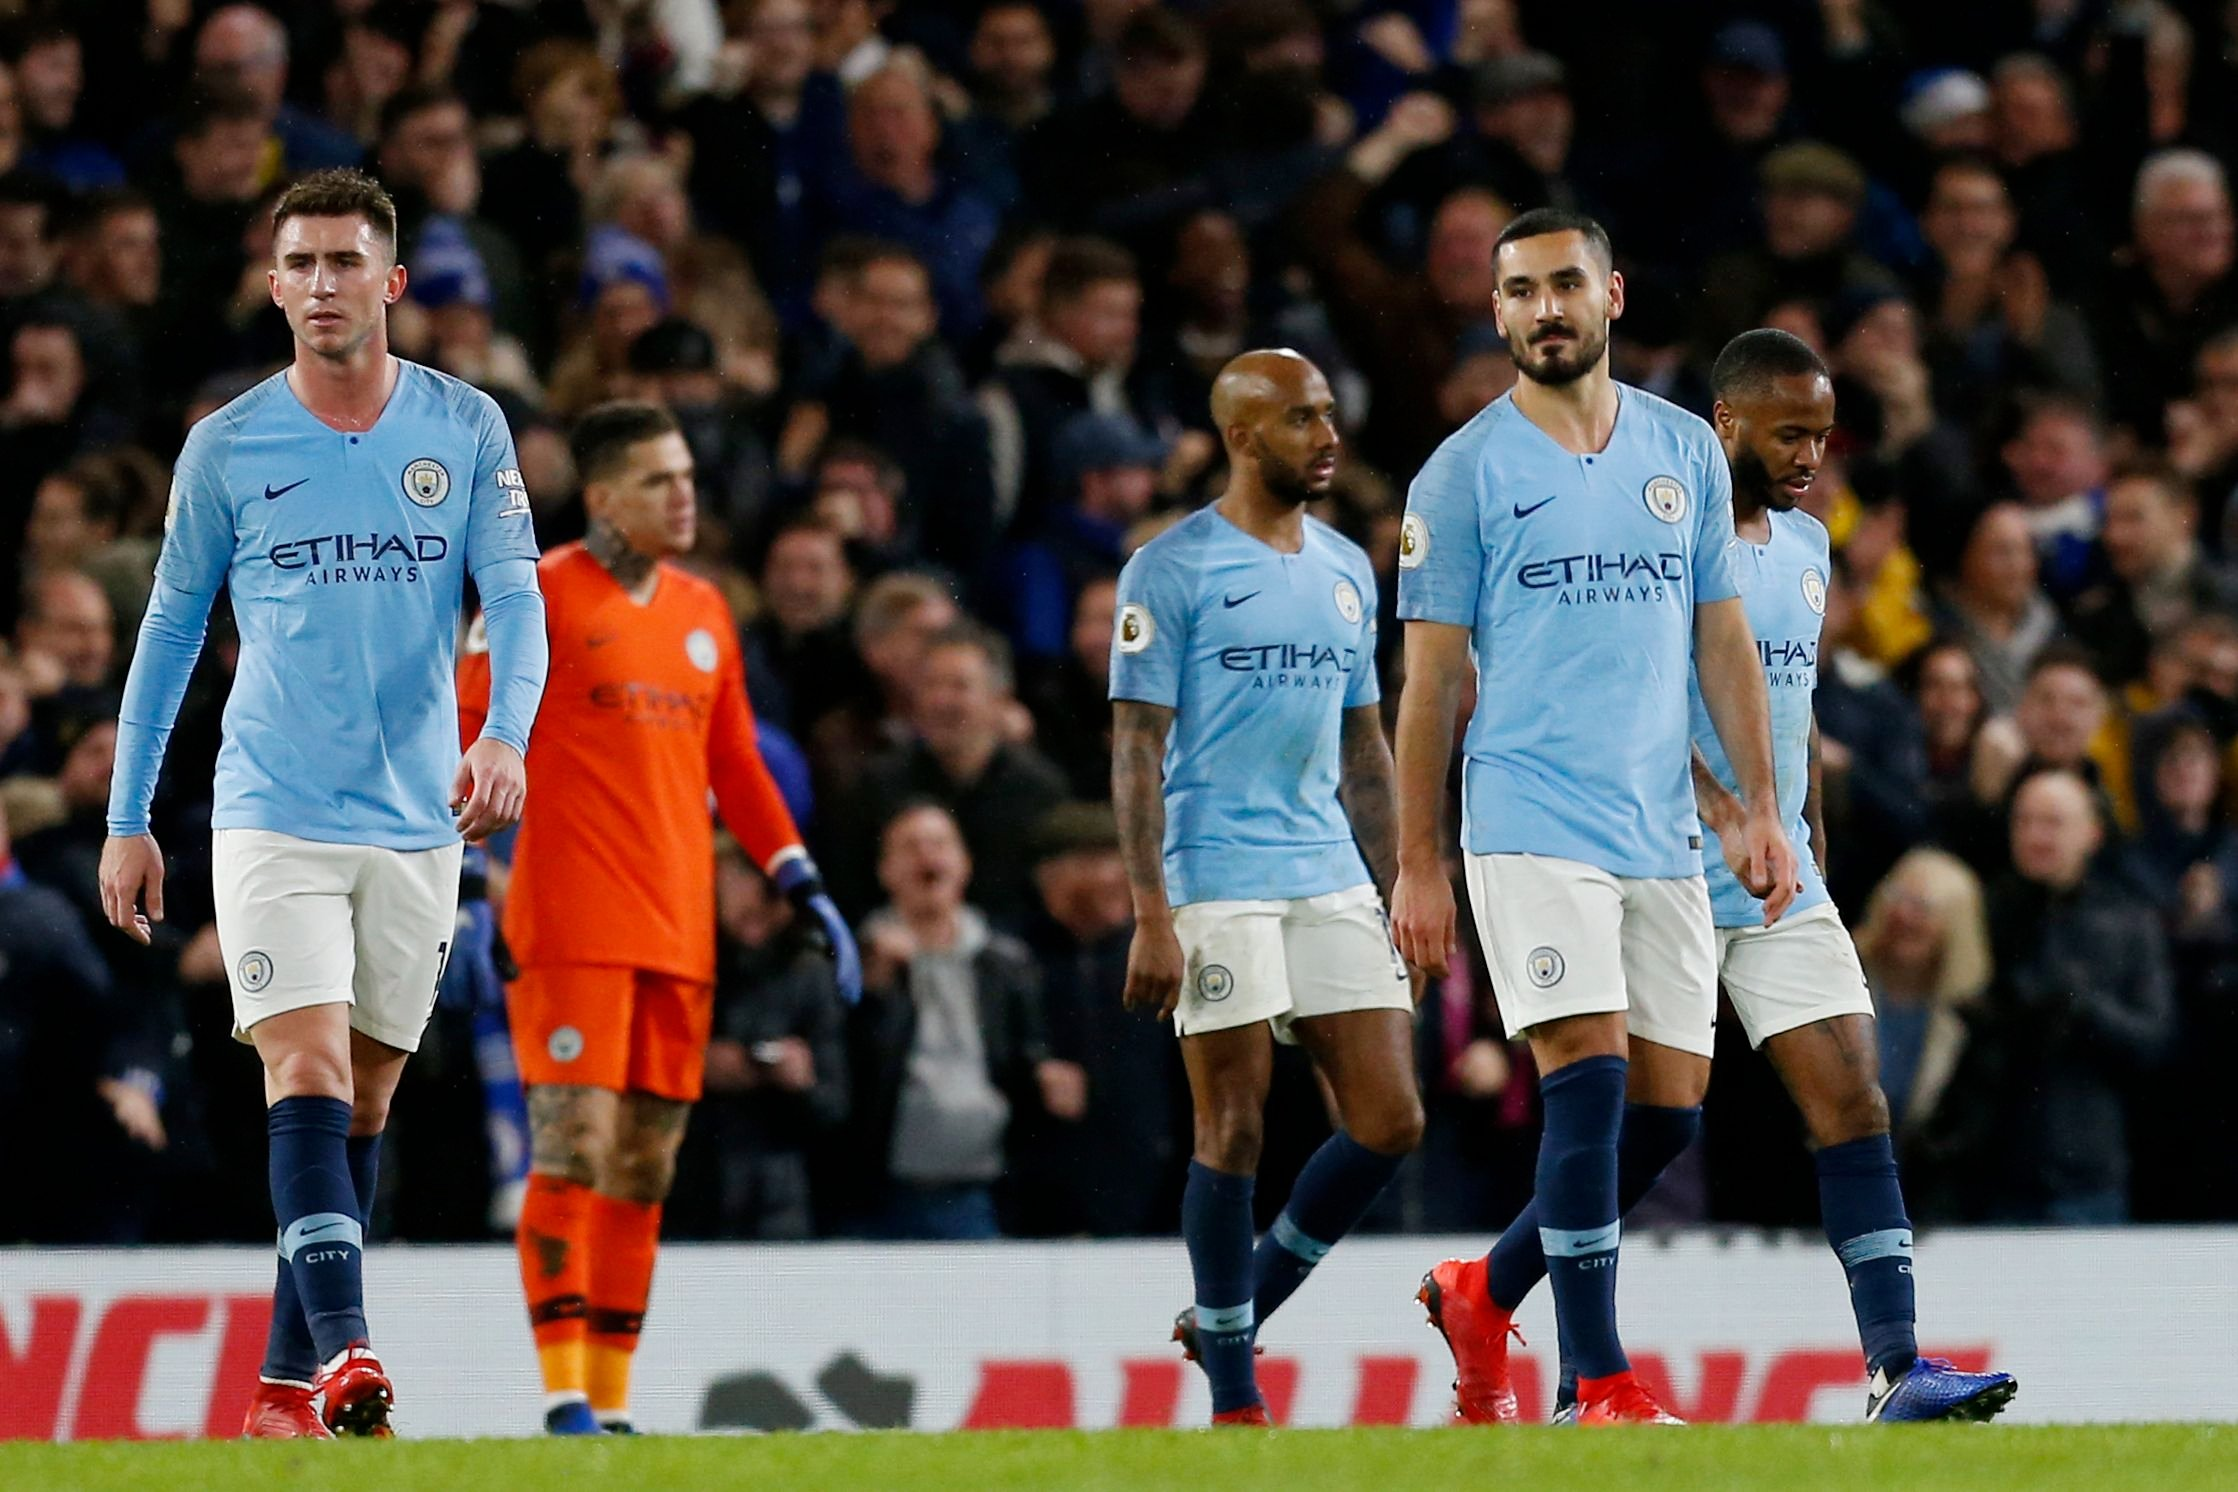 Manchester City could face transfer ban – FIFA